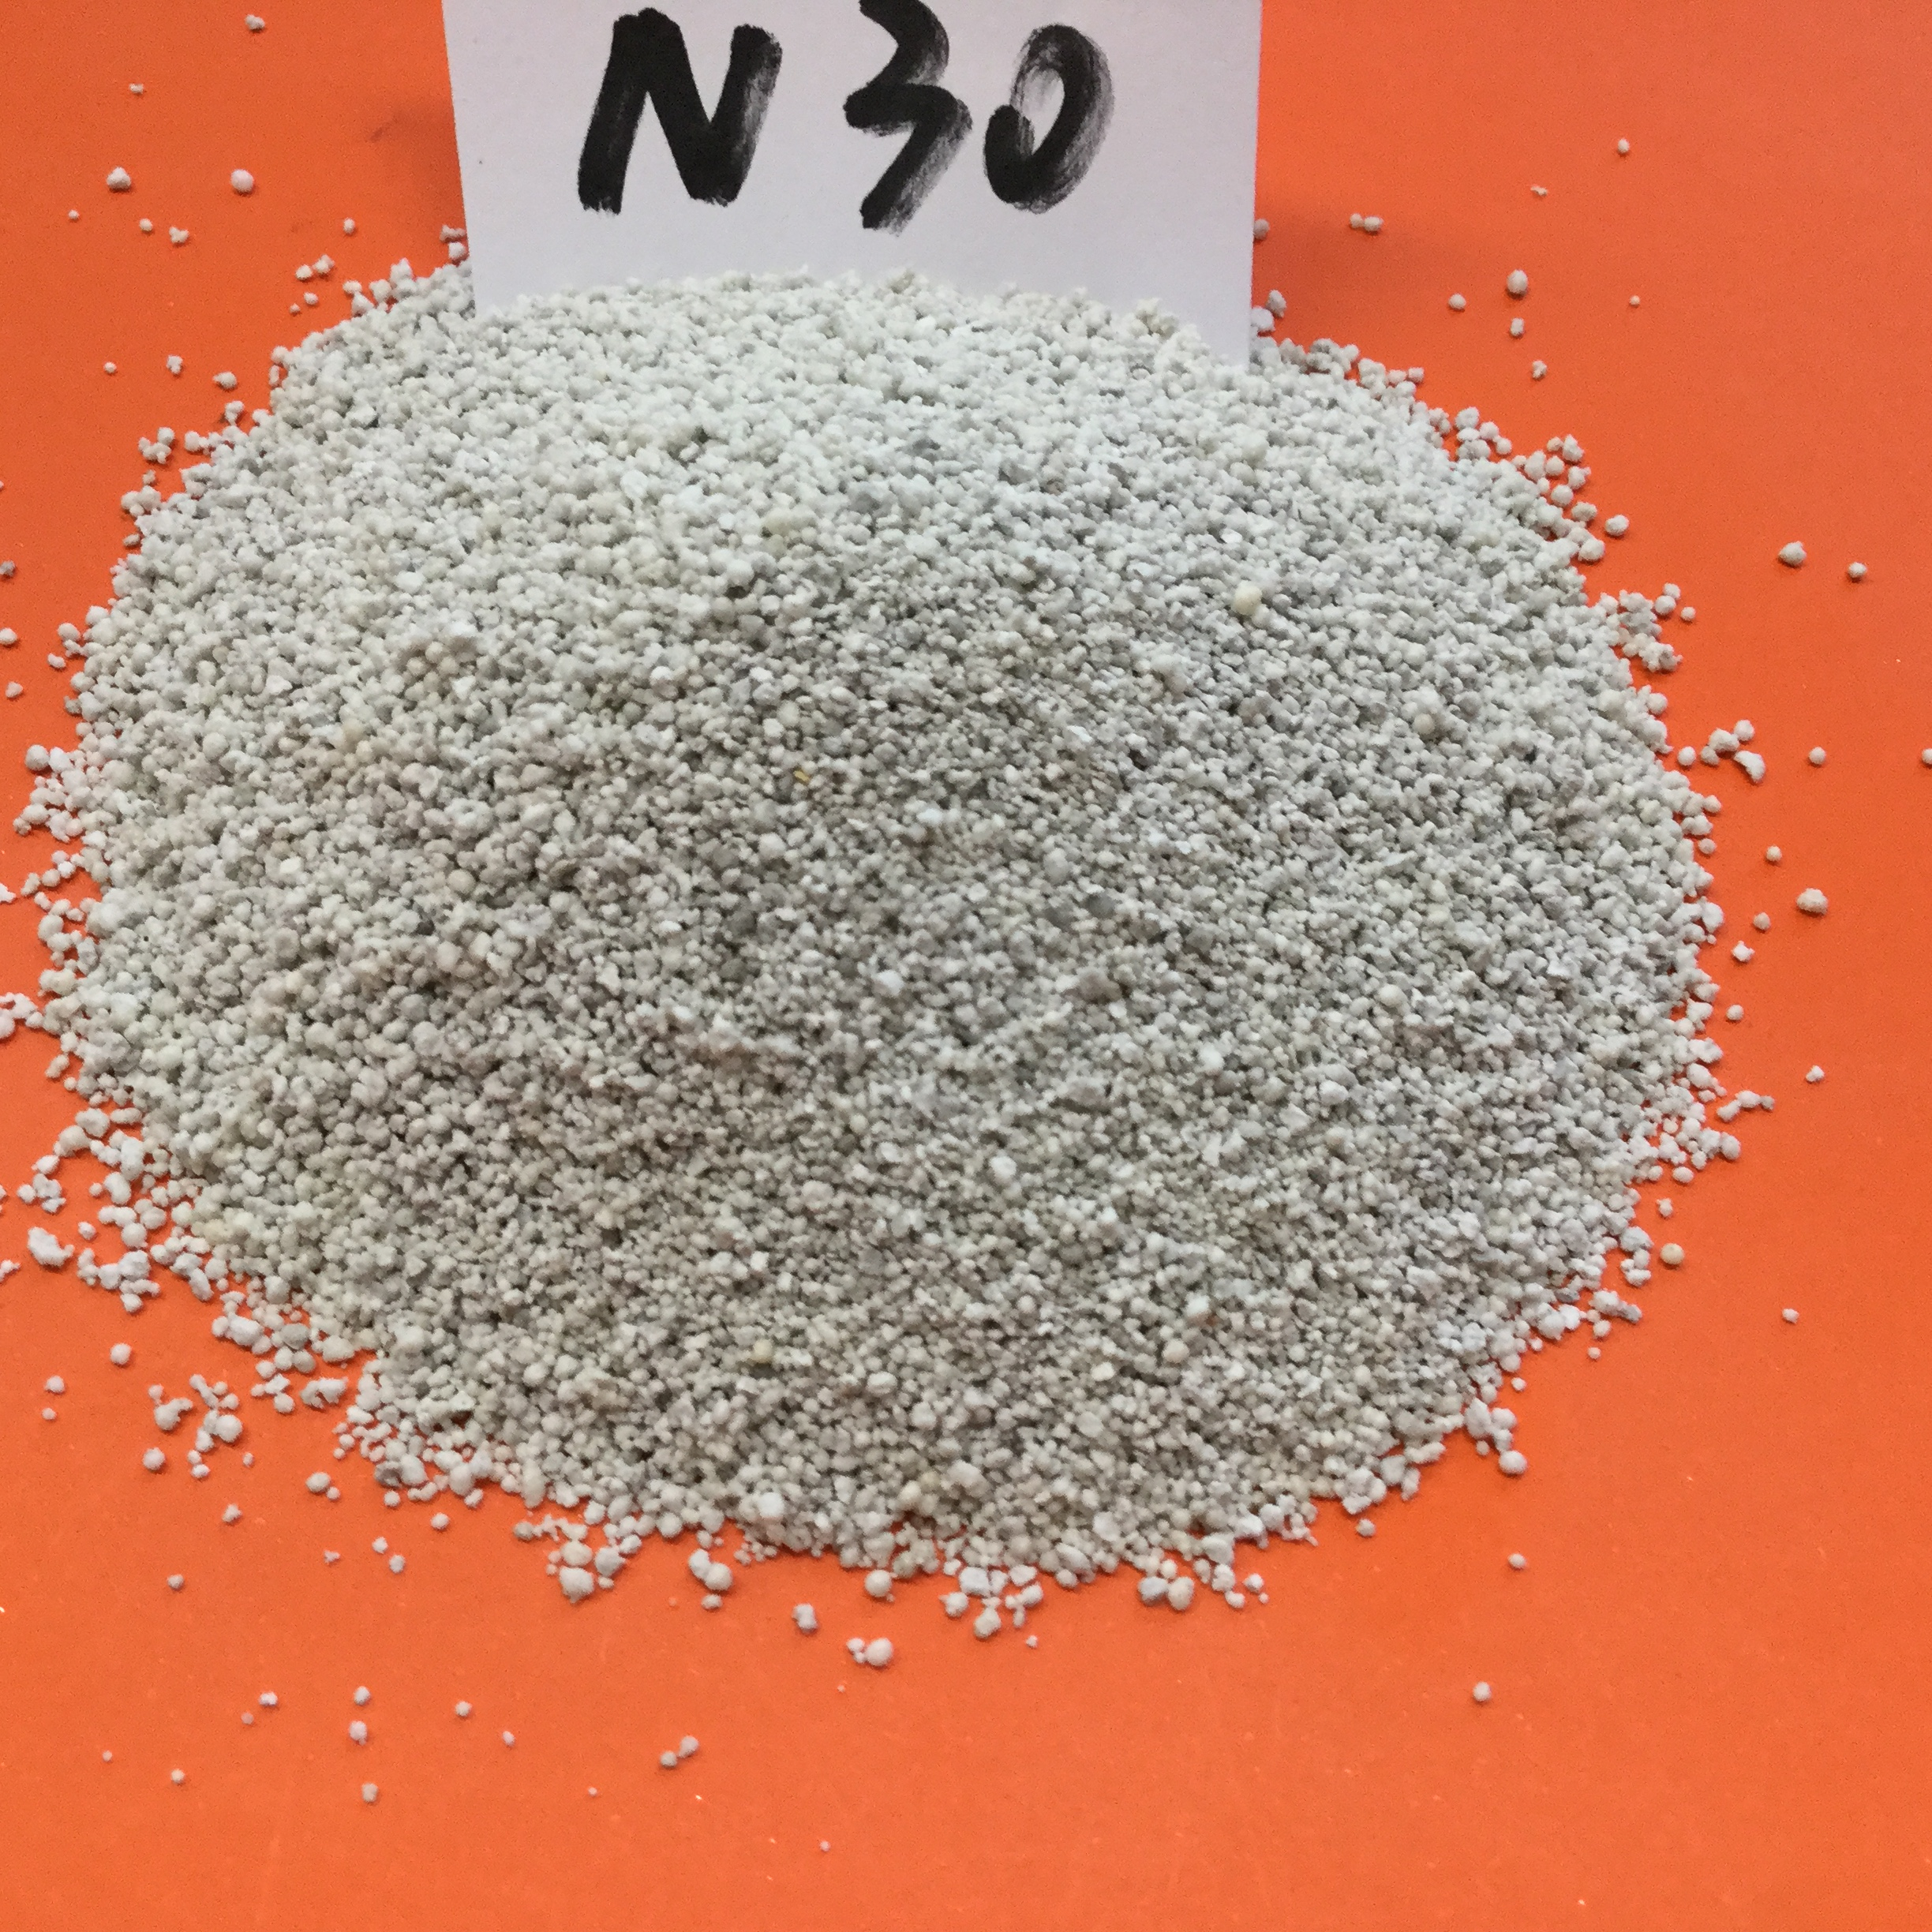 Wholesale Hollow Glass Microspheres/Hollow Glass Beads N30 for reducing weight